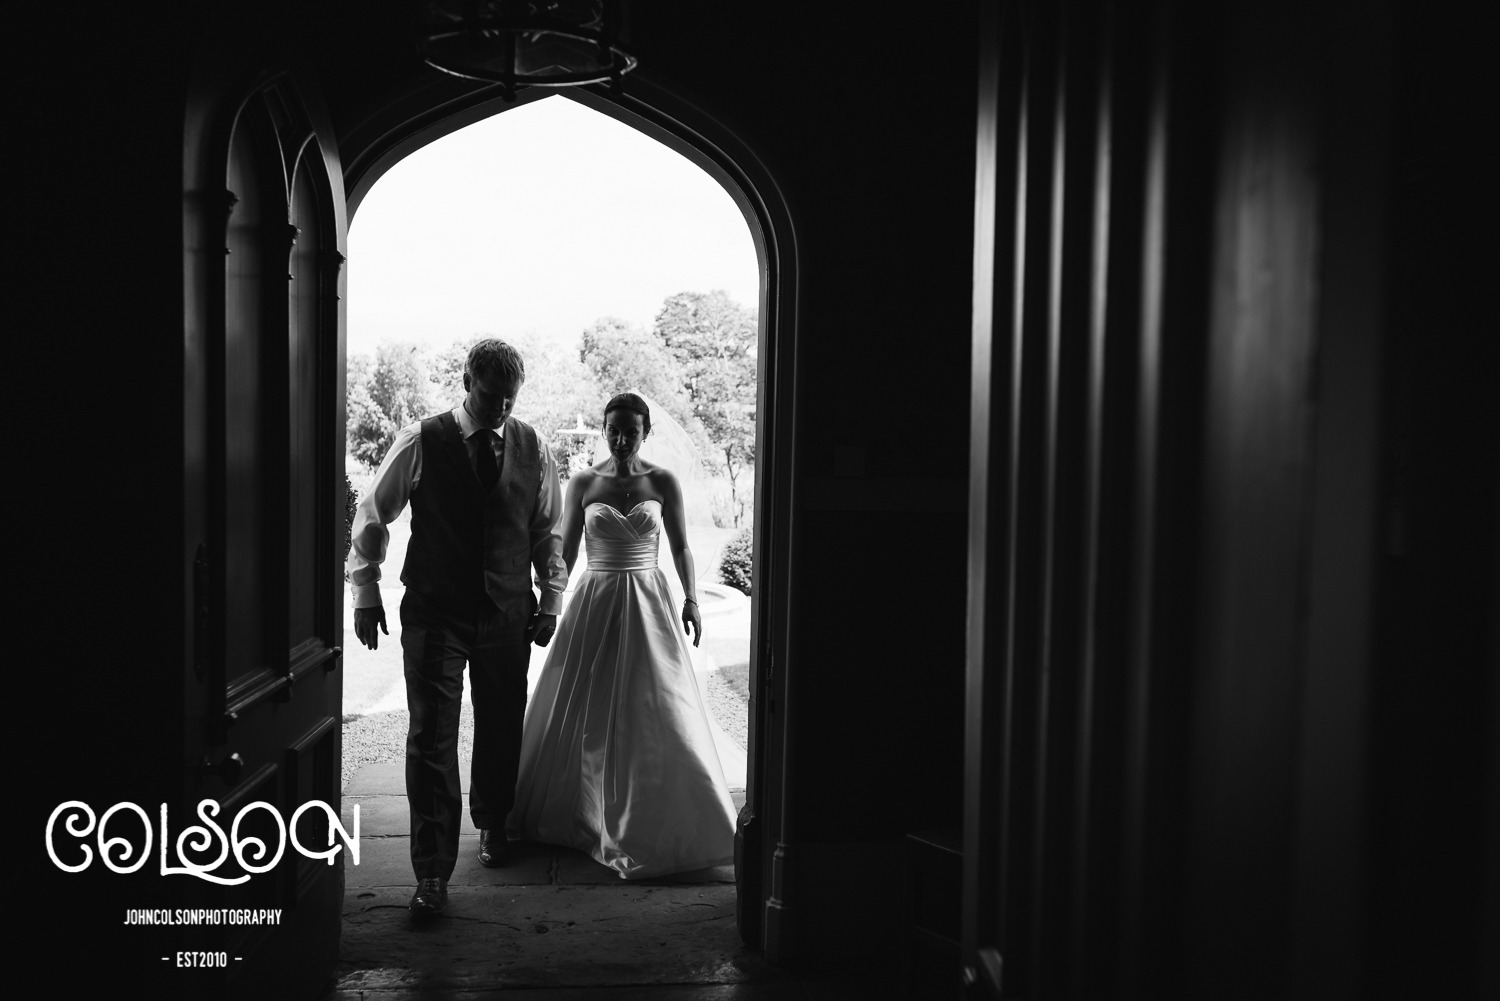 The Bride and Groom making their way to their wedding breakfast at Lemore Manor.